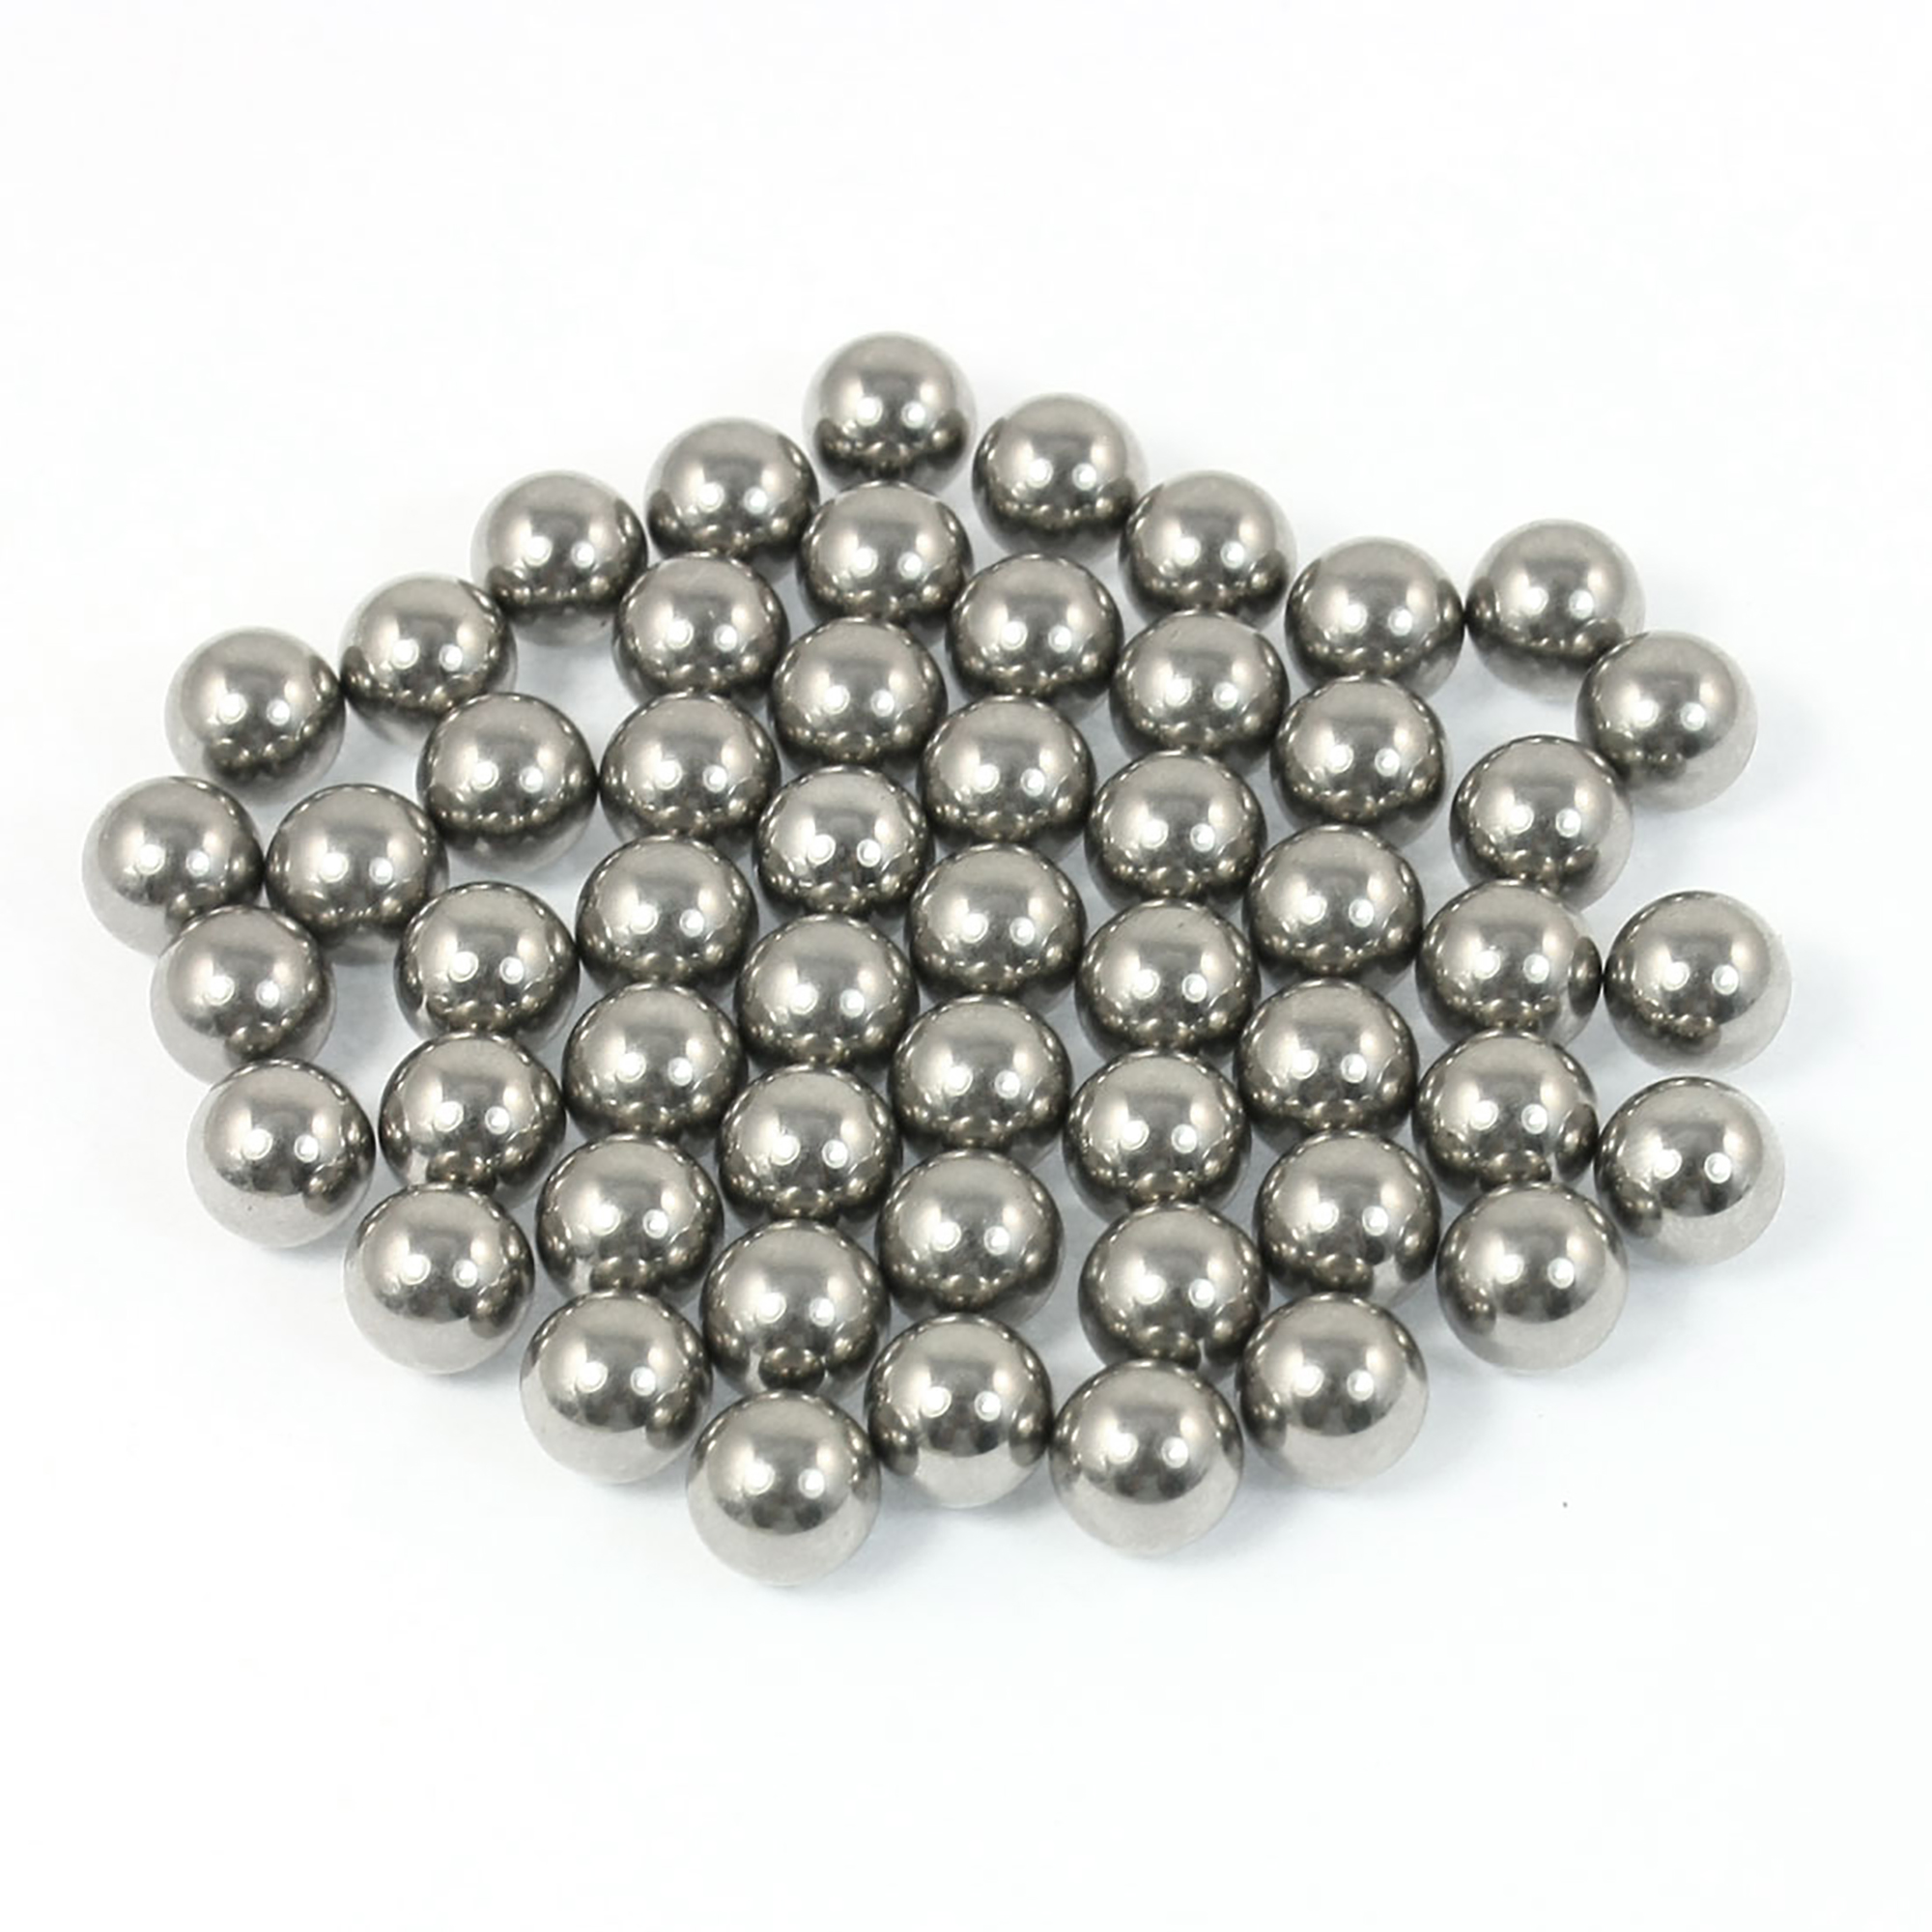 Bike Hub Wheel Bearing Steel Balls Repair Parts 7.9mm Diameter 45 Pcs